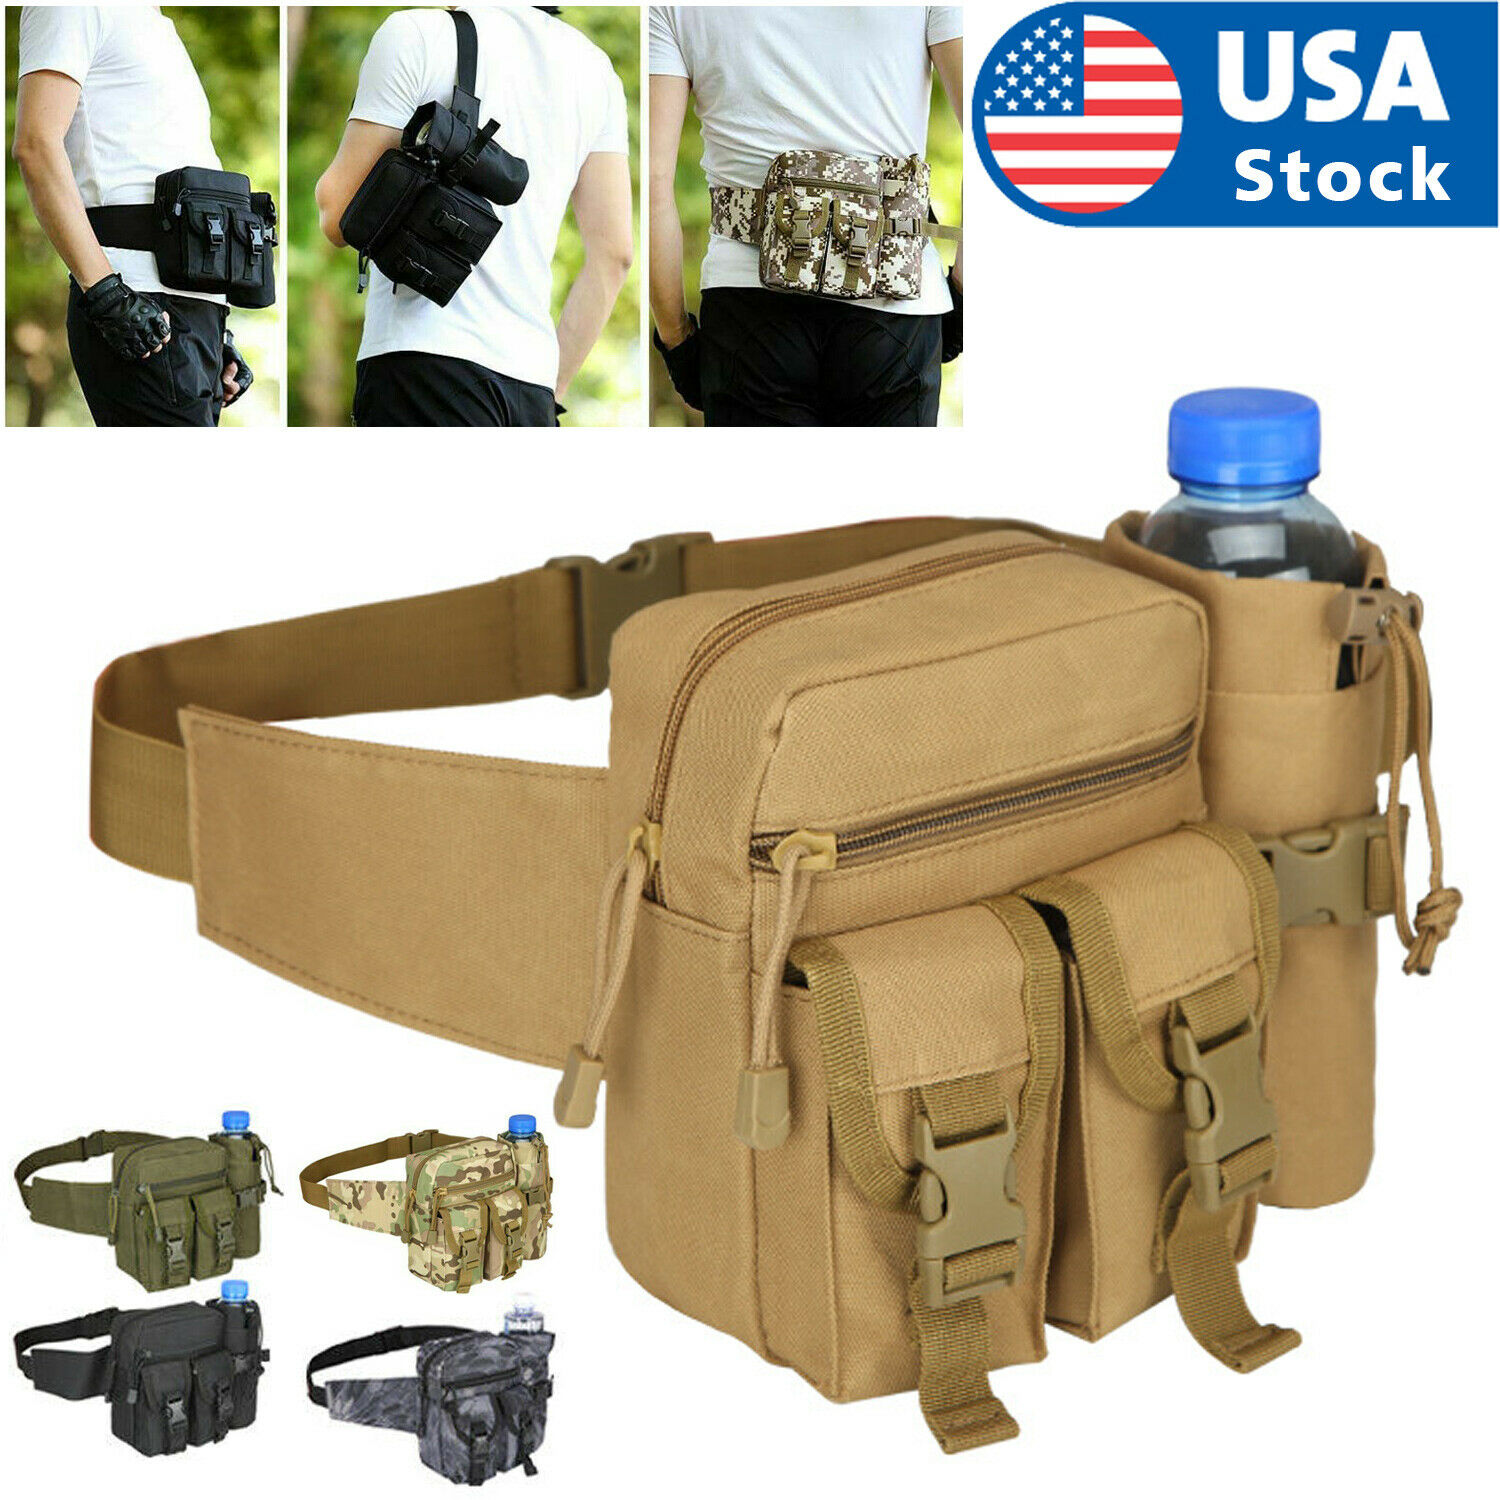 Outdoor Utility Tactical Waist Fanny Pack Pouch Military Camping Hiking Belt Bag Bags